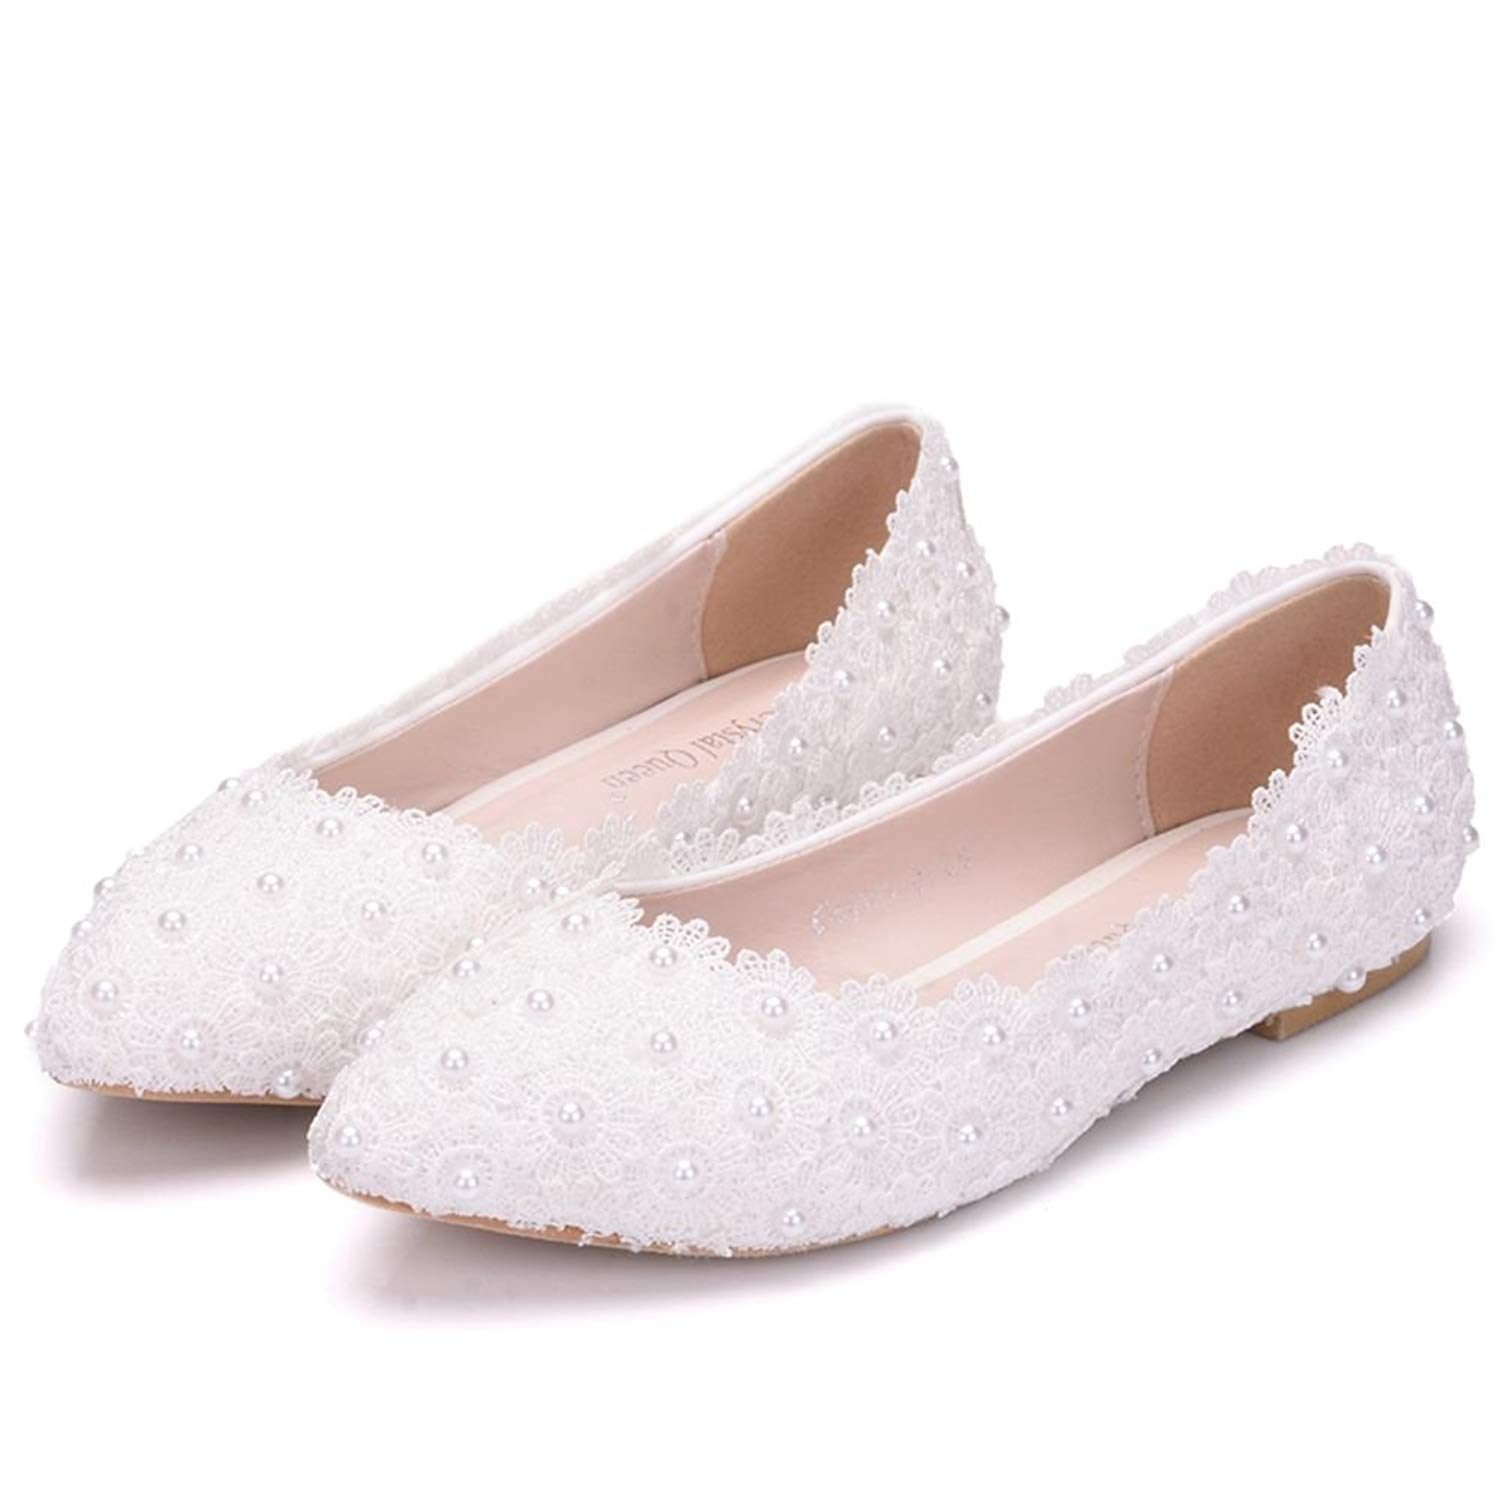 c6523560 Crystal Queen Women Flats Ballets Shoes White Lace Wedding Flats Pointed  Toe Plus Size Shoes Wedding